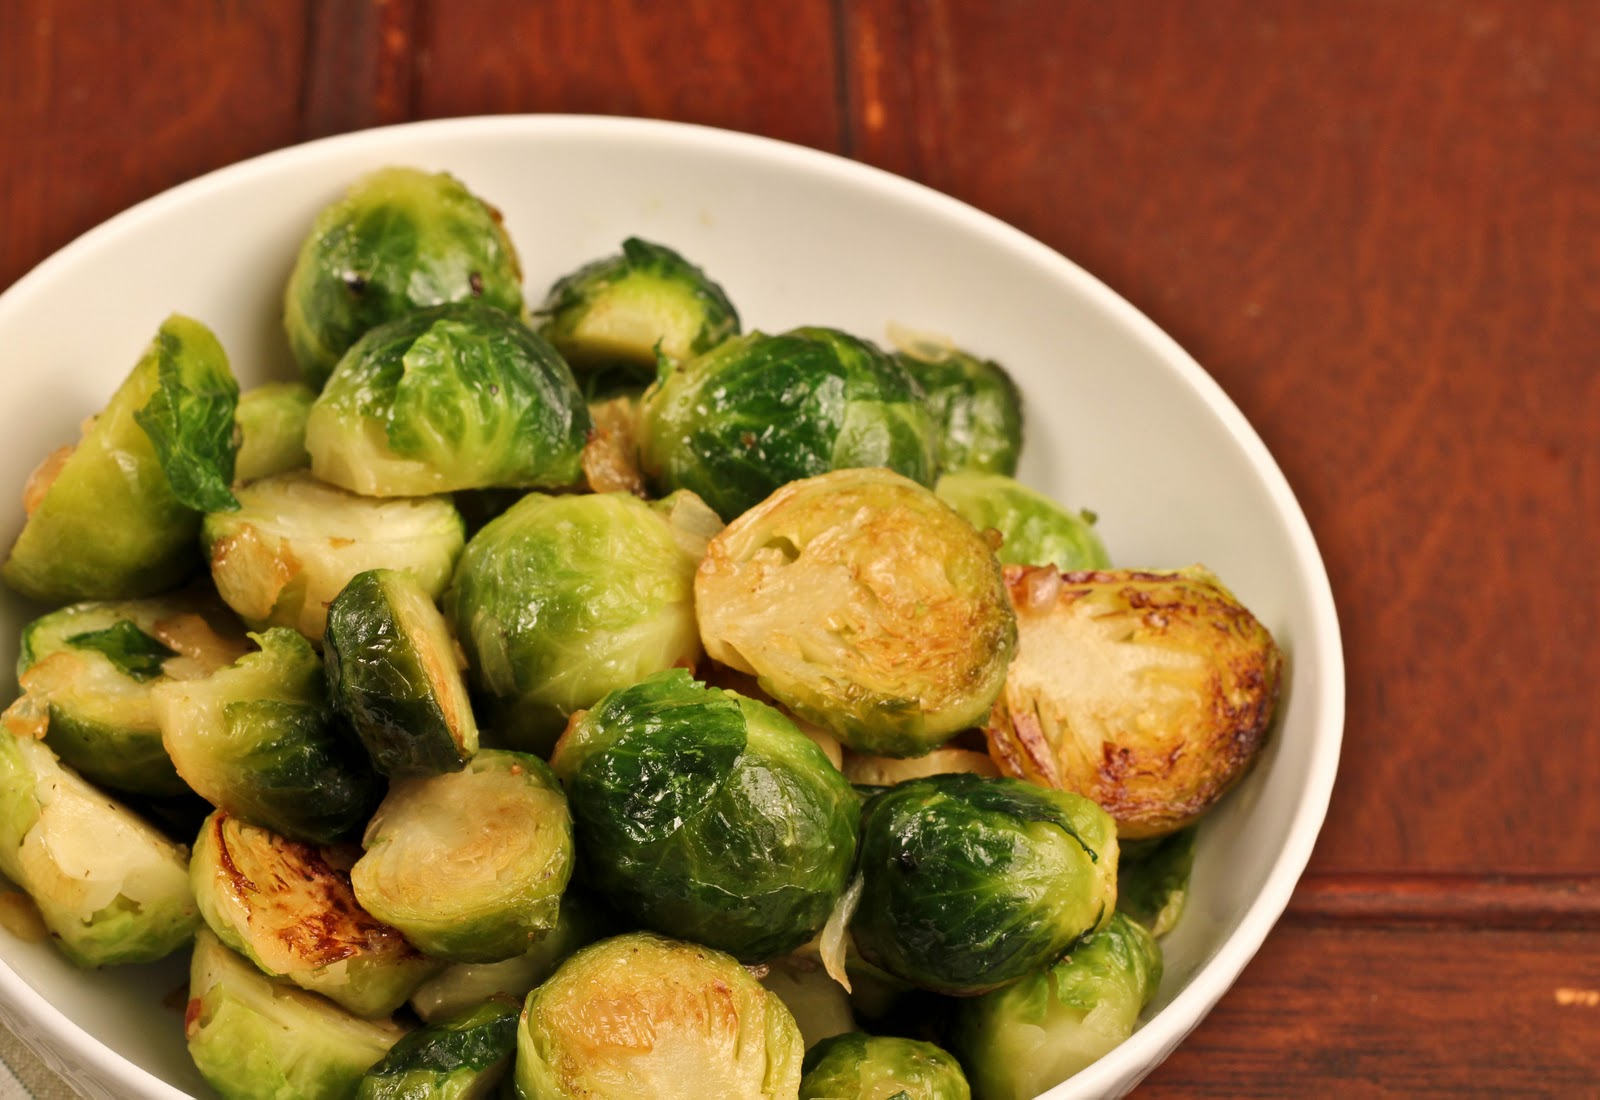 ... brussels sprouts sautéed with garlic sauteed brussels sprouts with